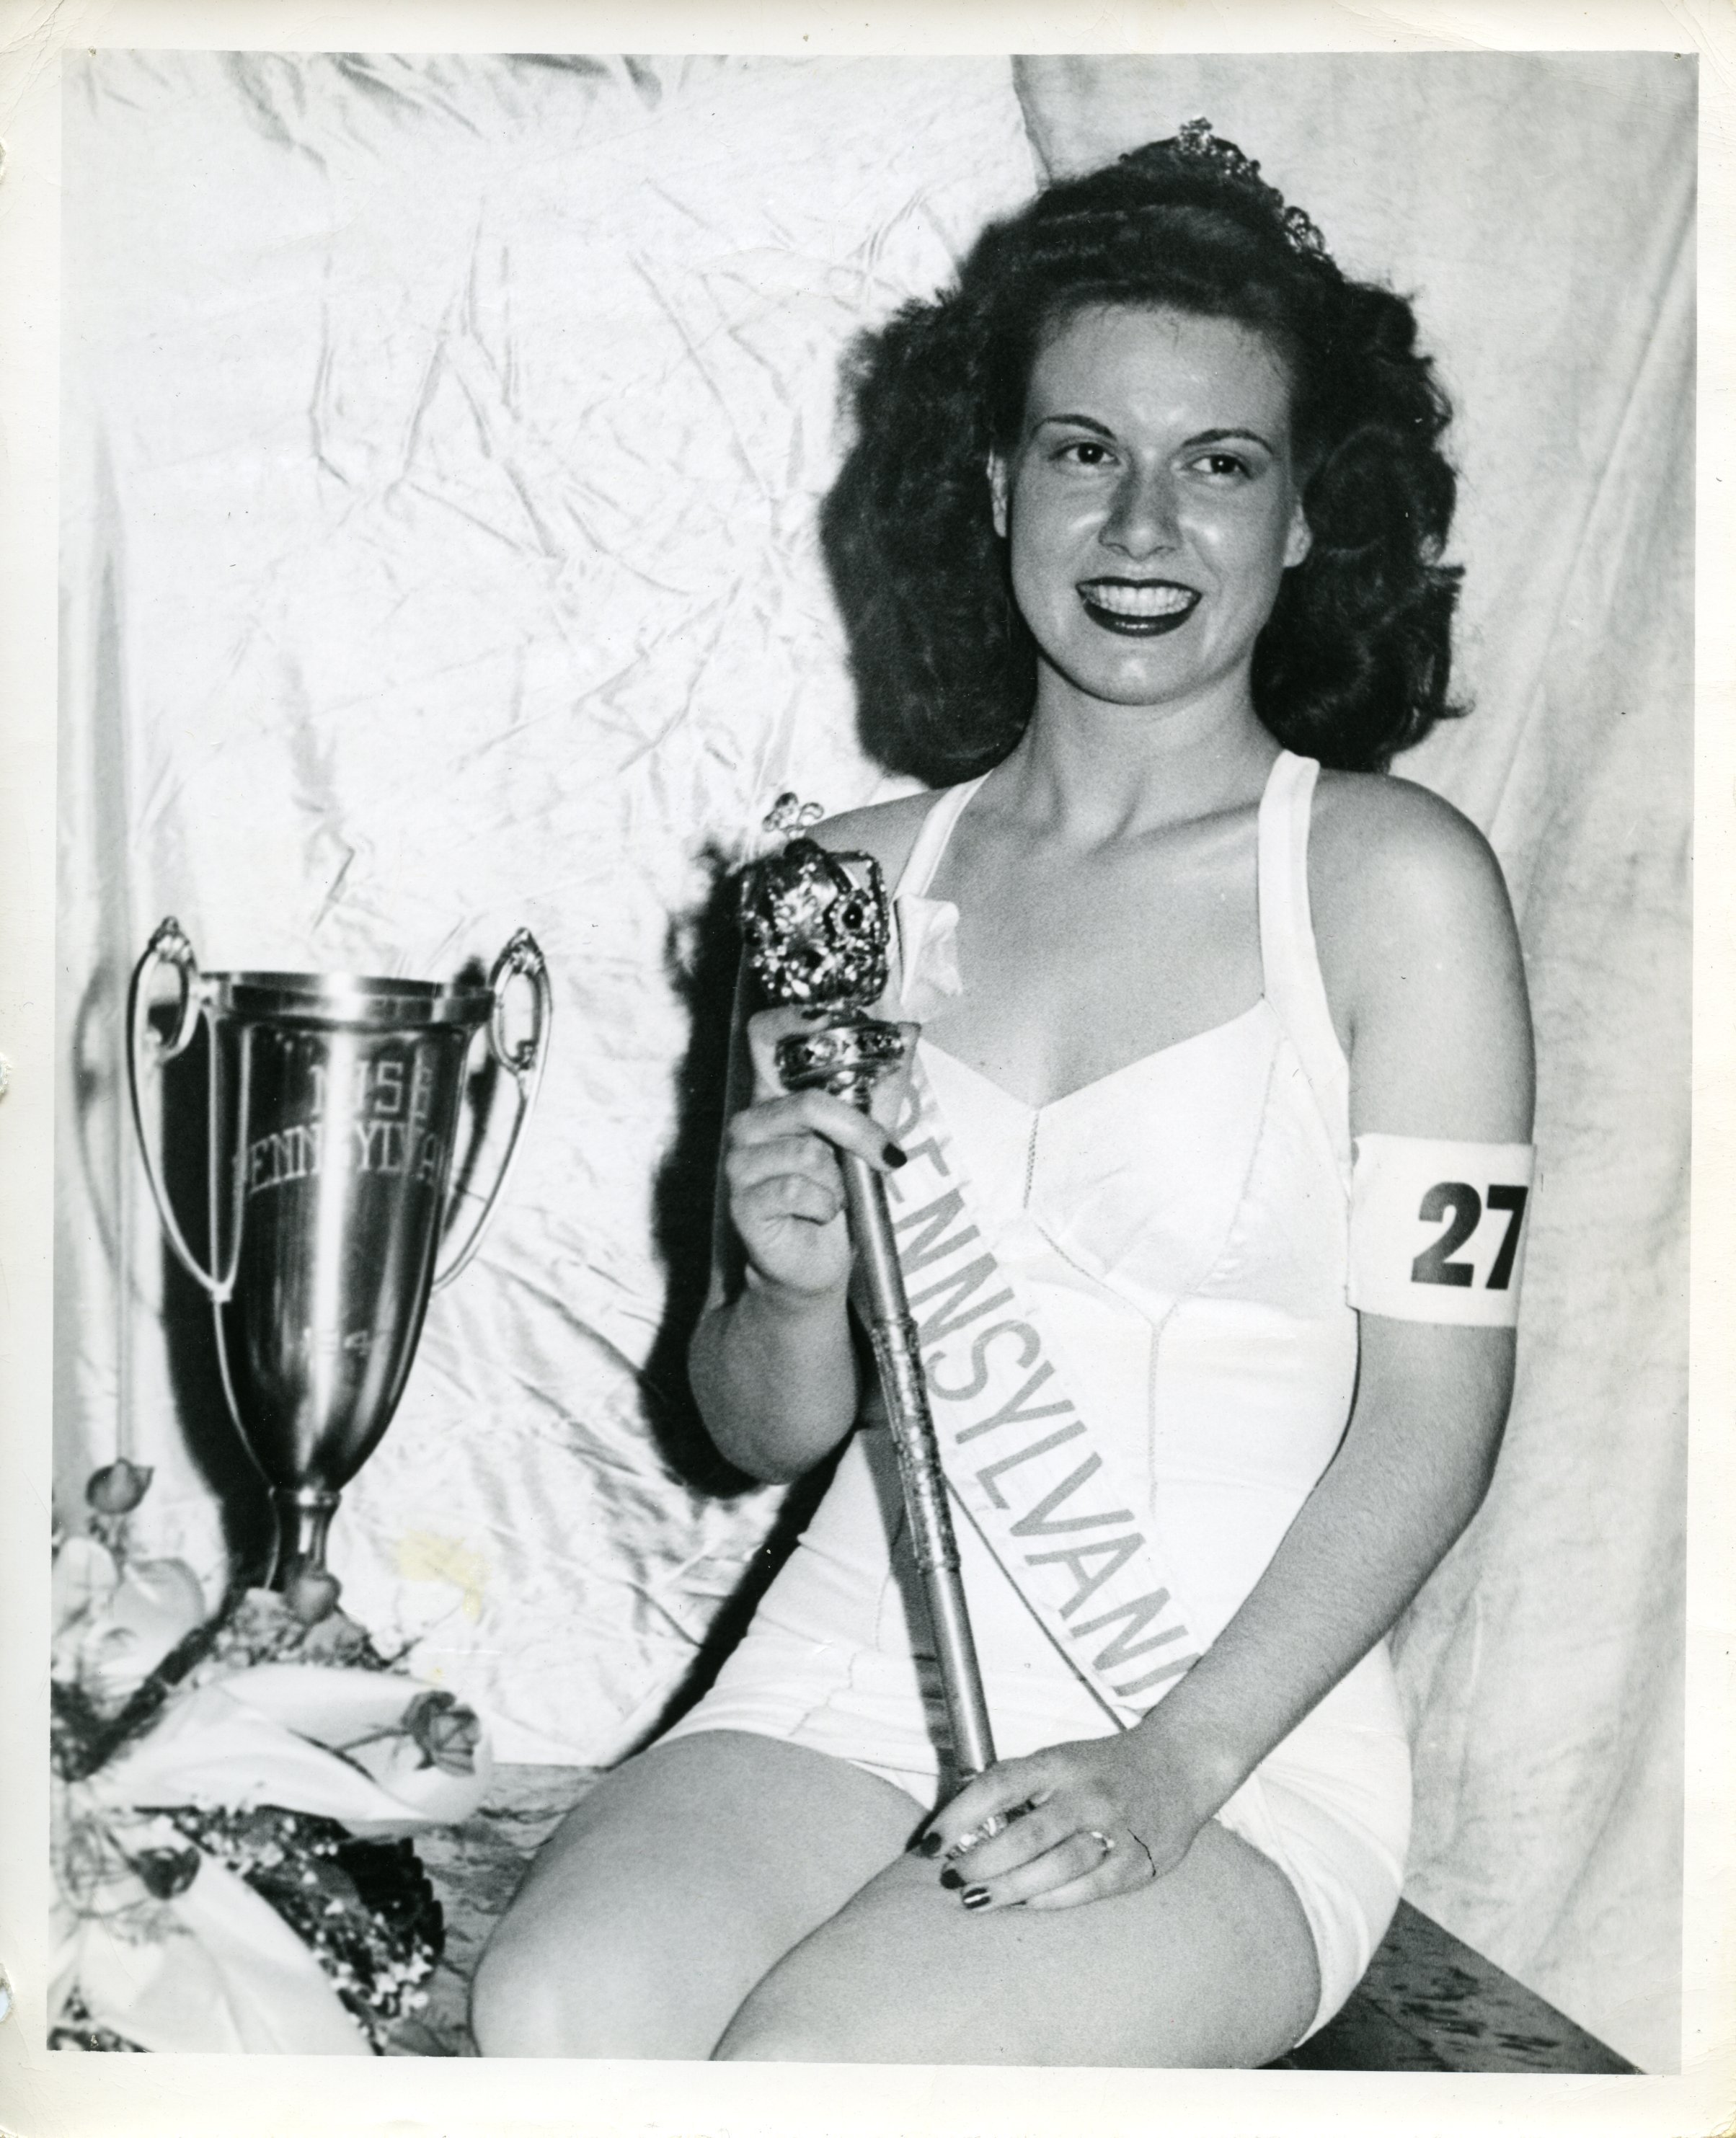 S22-7_PA_with_trophy.jpg